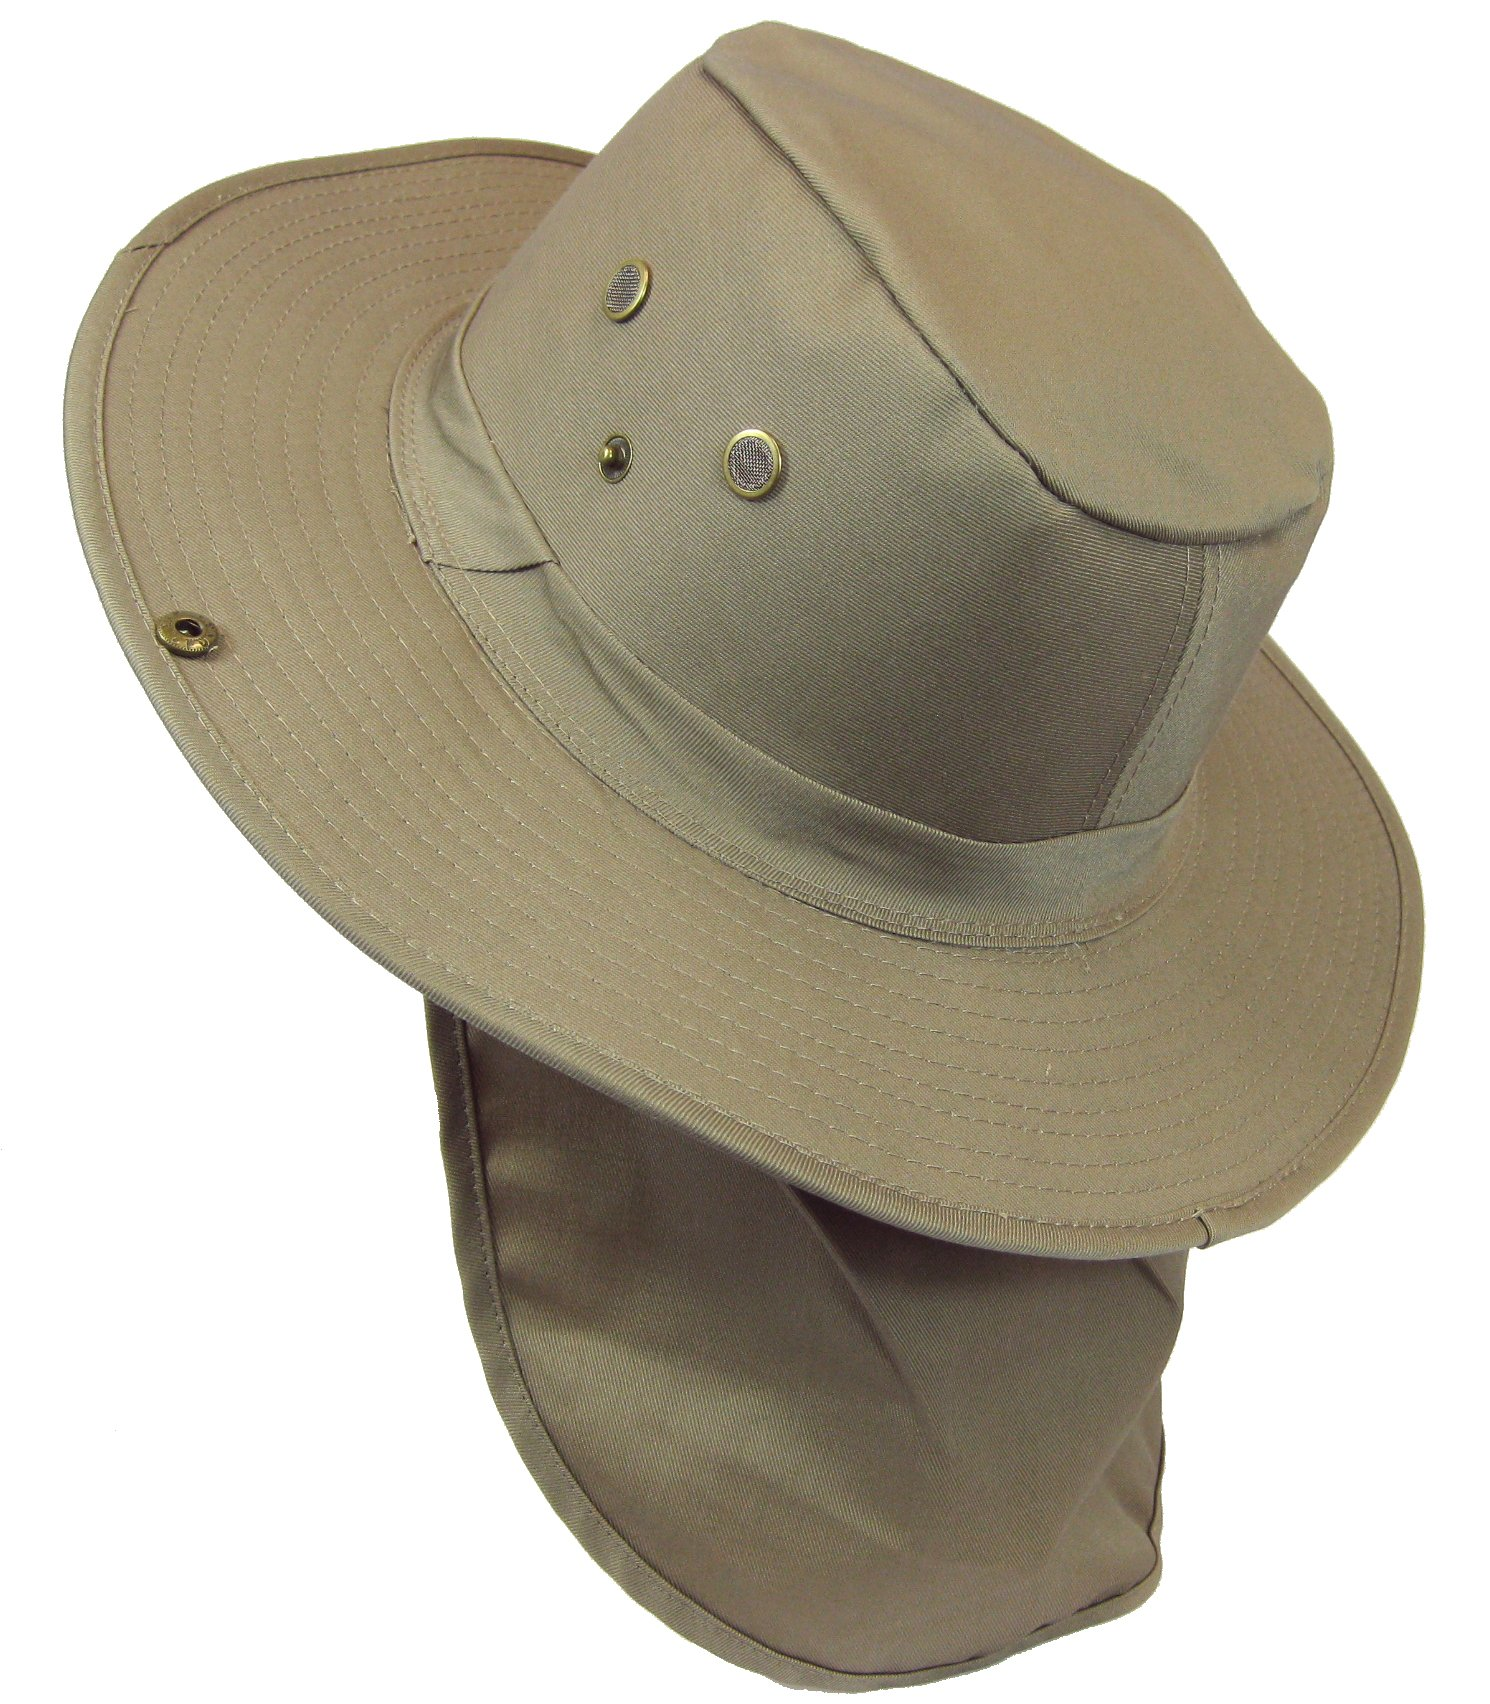 Boonie Bush Safari Outdoor Fishing Hiking Hunting Boating Snap Brim Hat Sun Cap with Neck Flap (Khaki, S) by SW